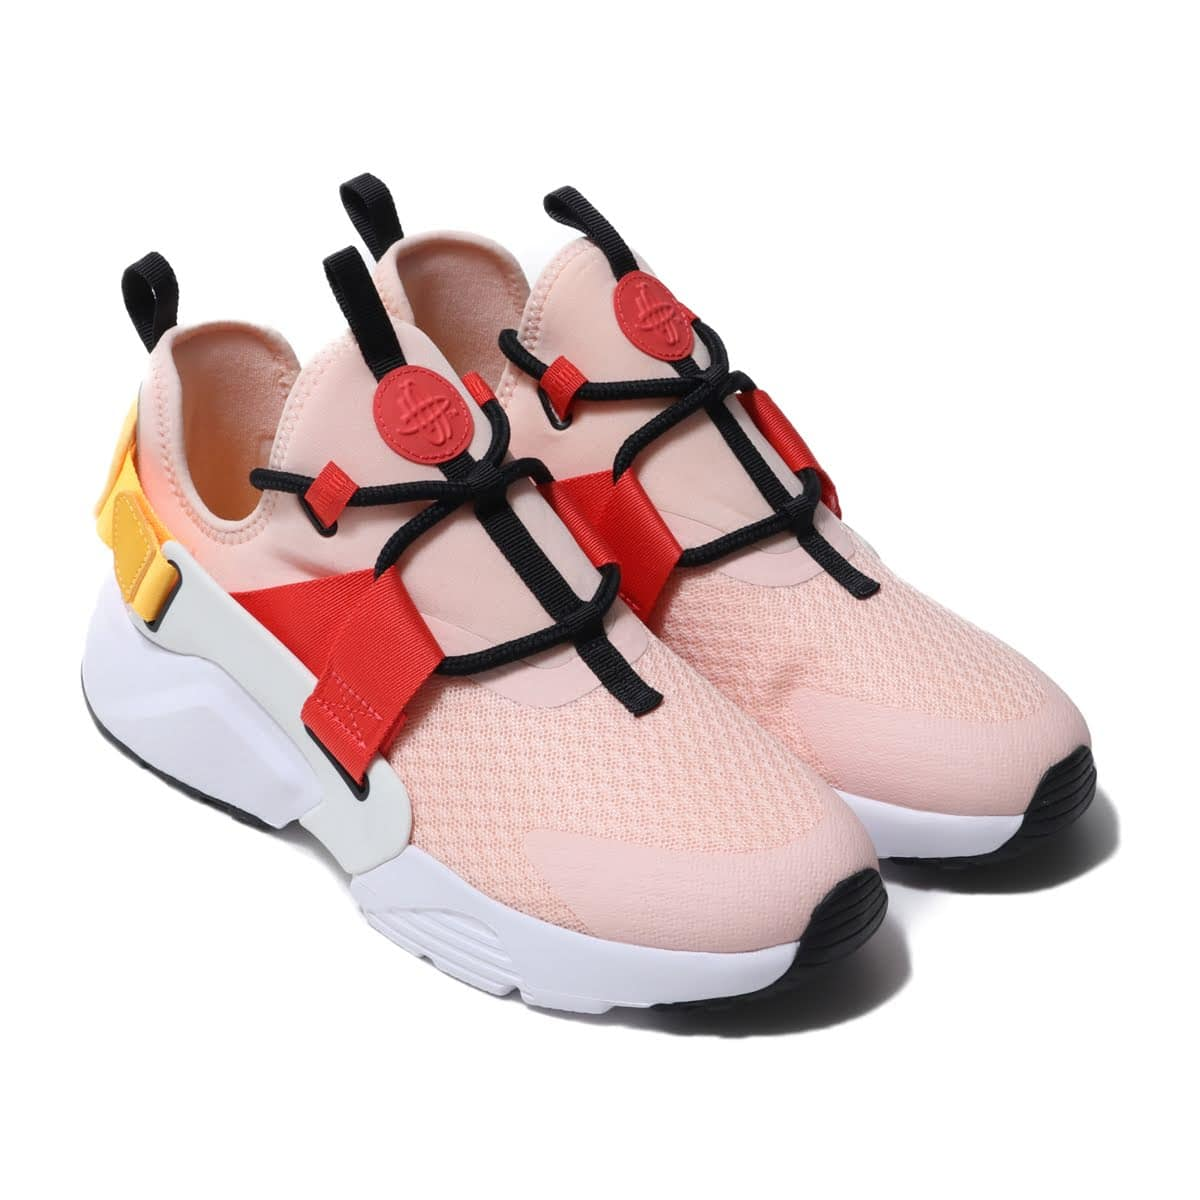 new arrivals 31425 49e12 NIKE W AIR HUARACHE CITY LOW WSHD CRL SMMT WHT-LSR ORNG-EMB 19SU-I